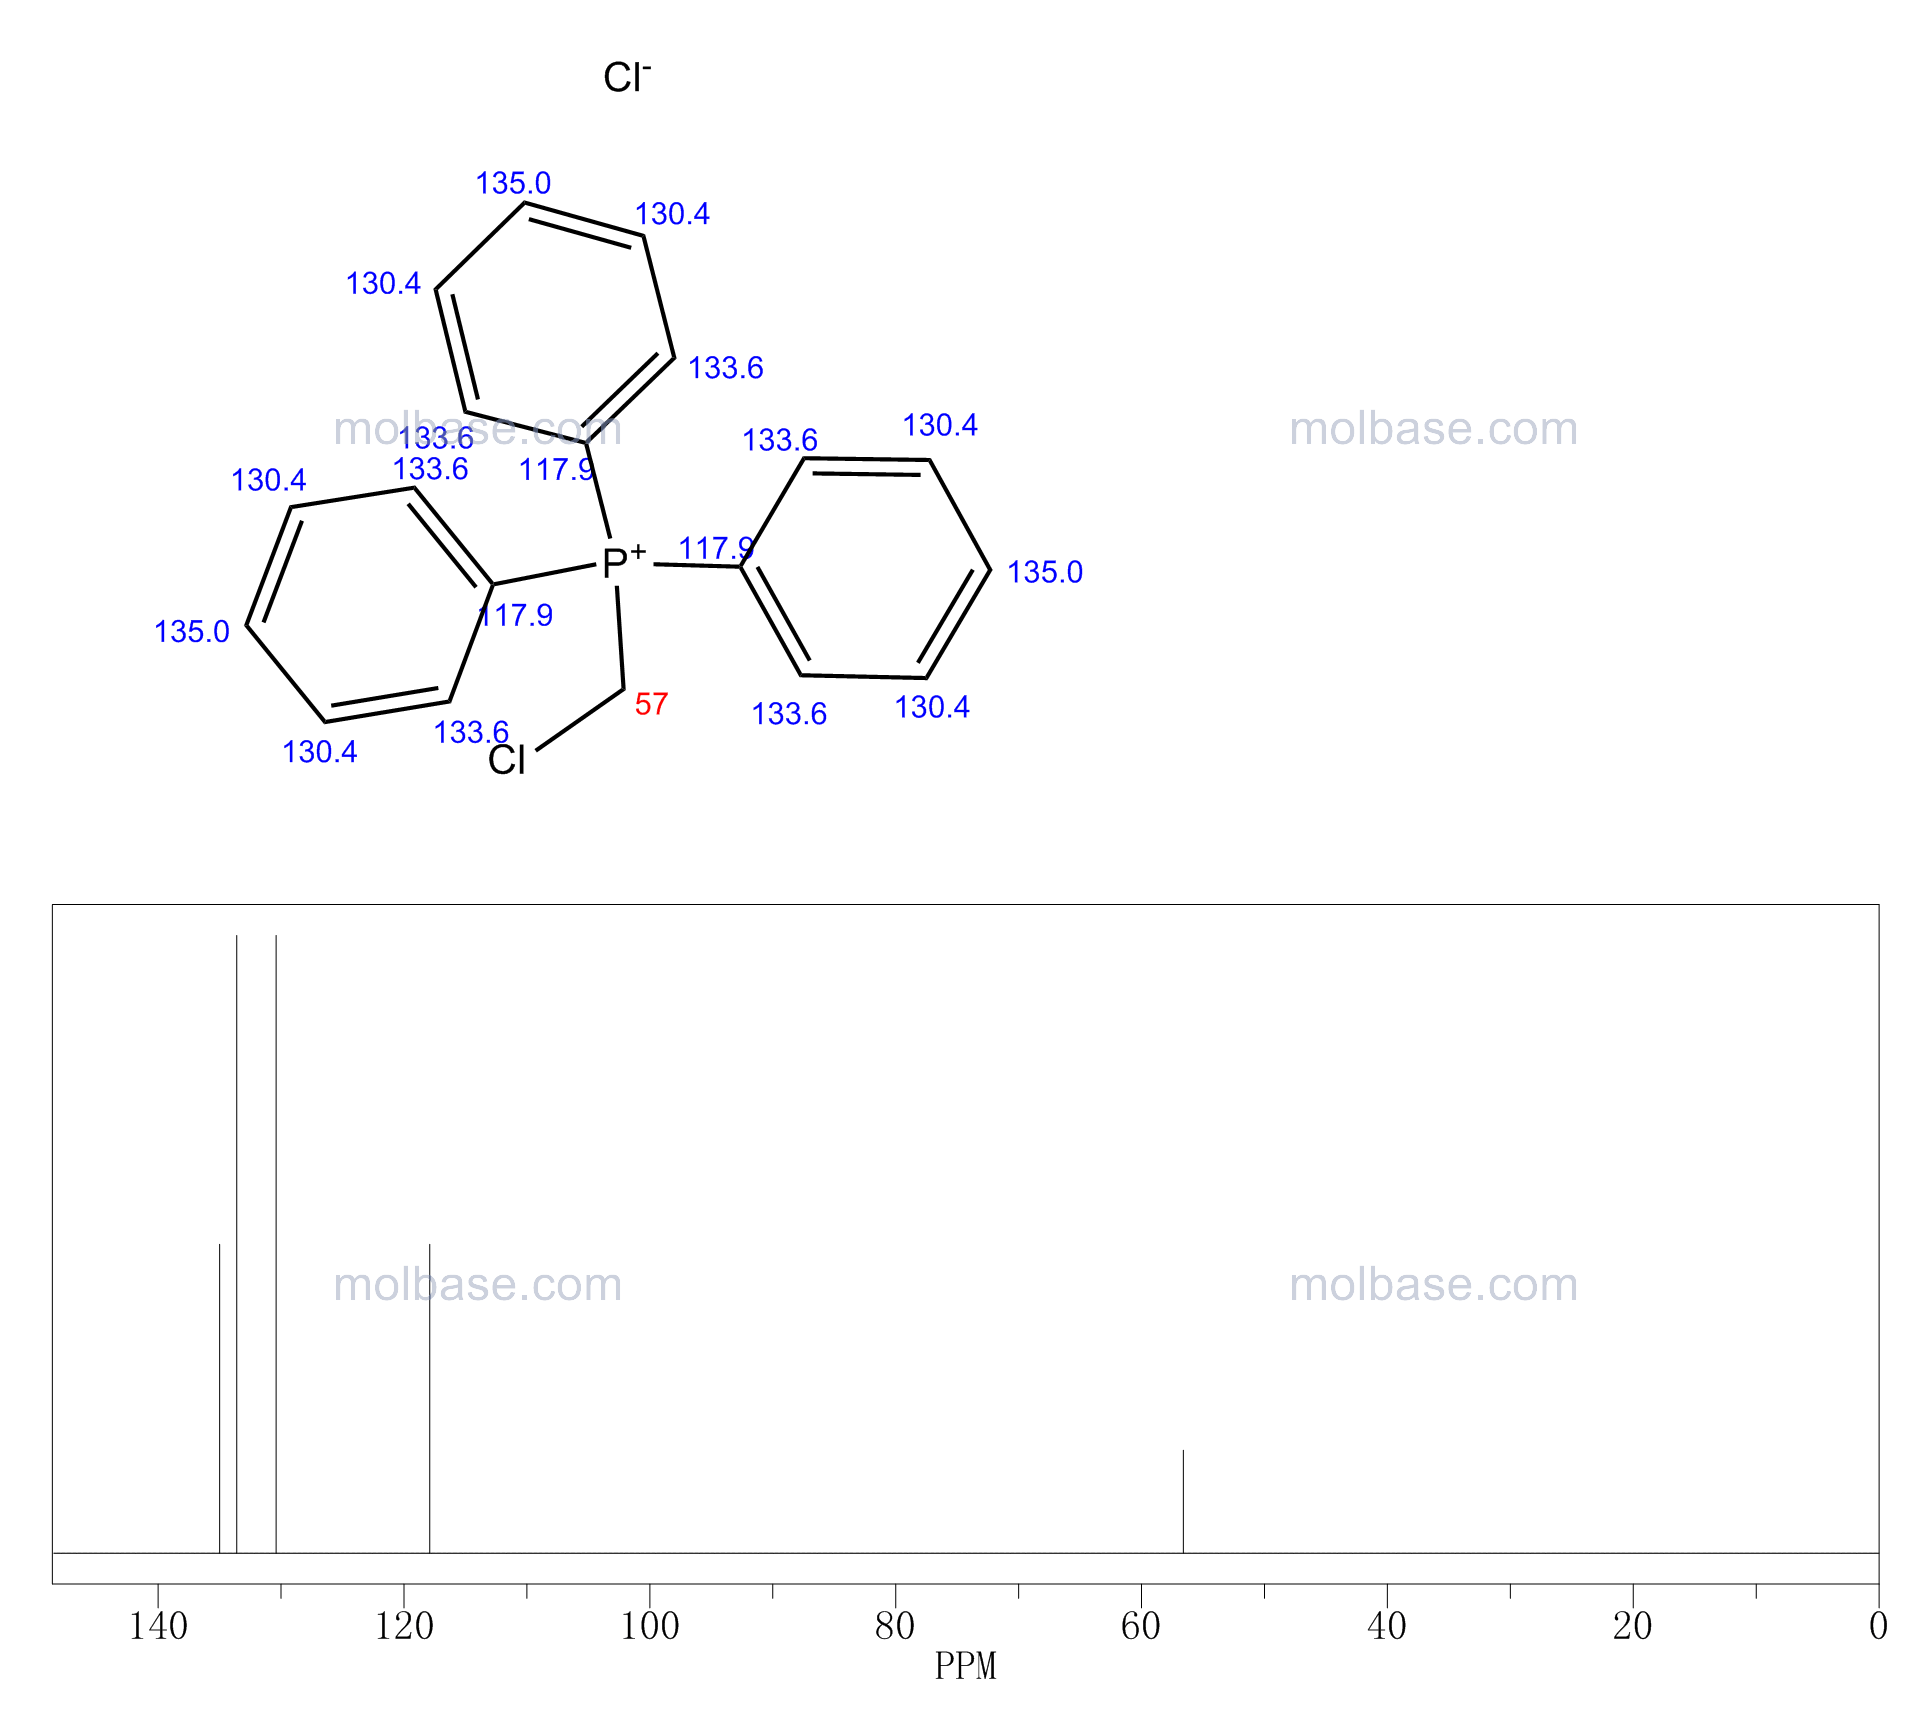 (CHLOROMETHYL)TRIPHENYLPHOSPHONIUM CHLORIDE NMR spectra analysis, Chemical CAS NO. 5293-84-5 NMR spectral analysis, (CHLOROMETHYL)TRIPHENYLPHOSPHONIUM CHLORIDE C-NMR spectrum